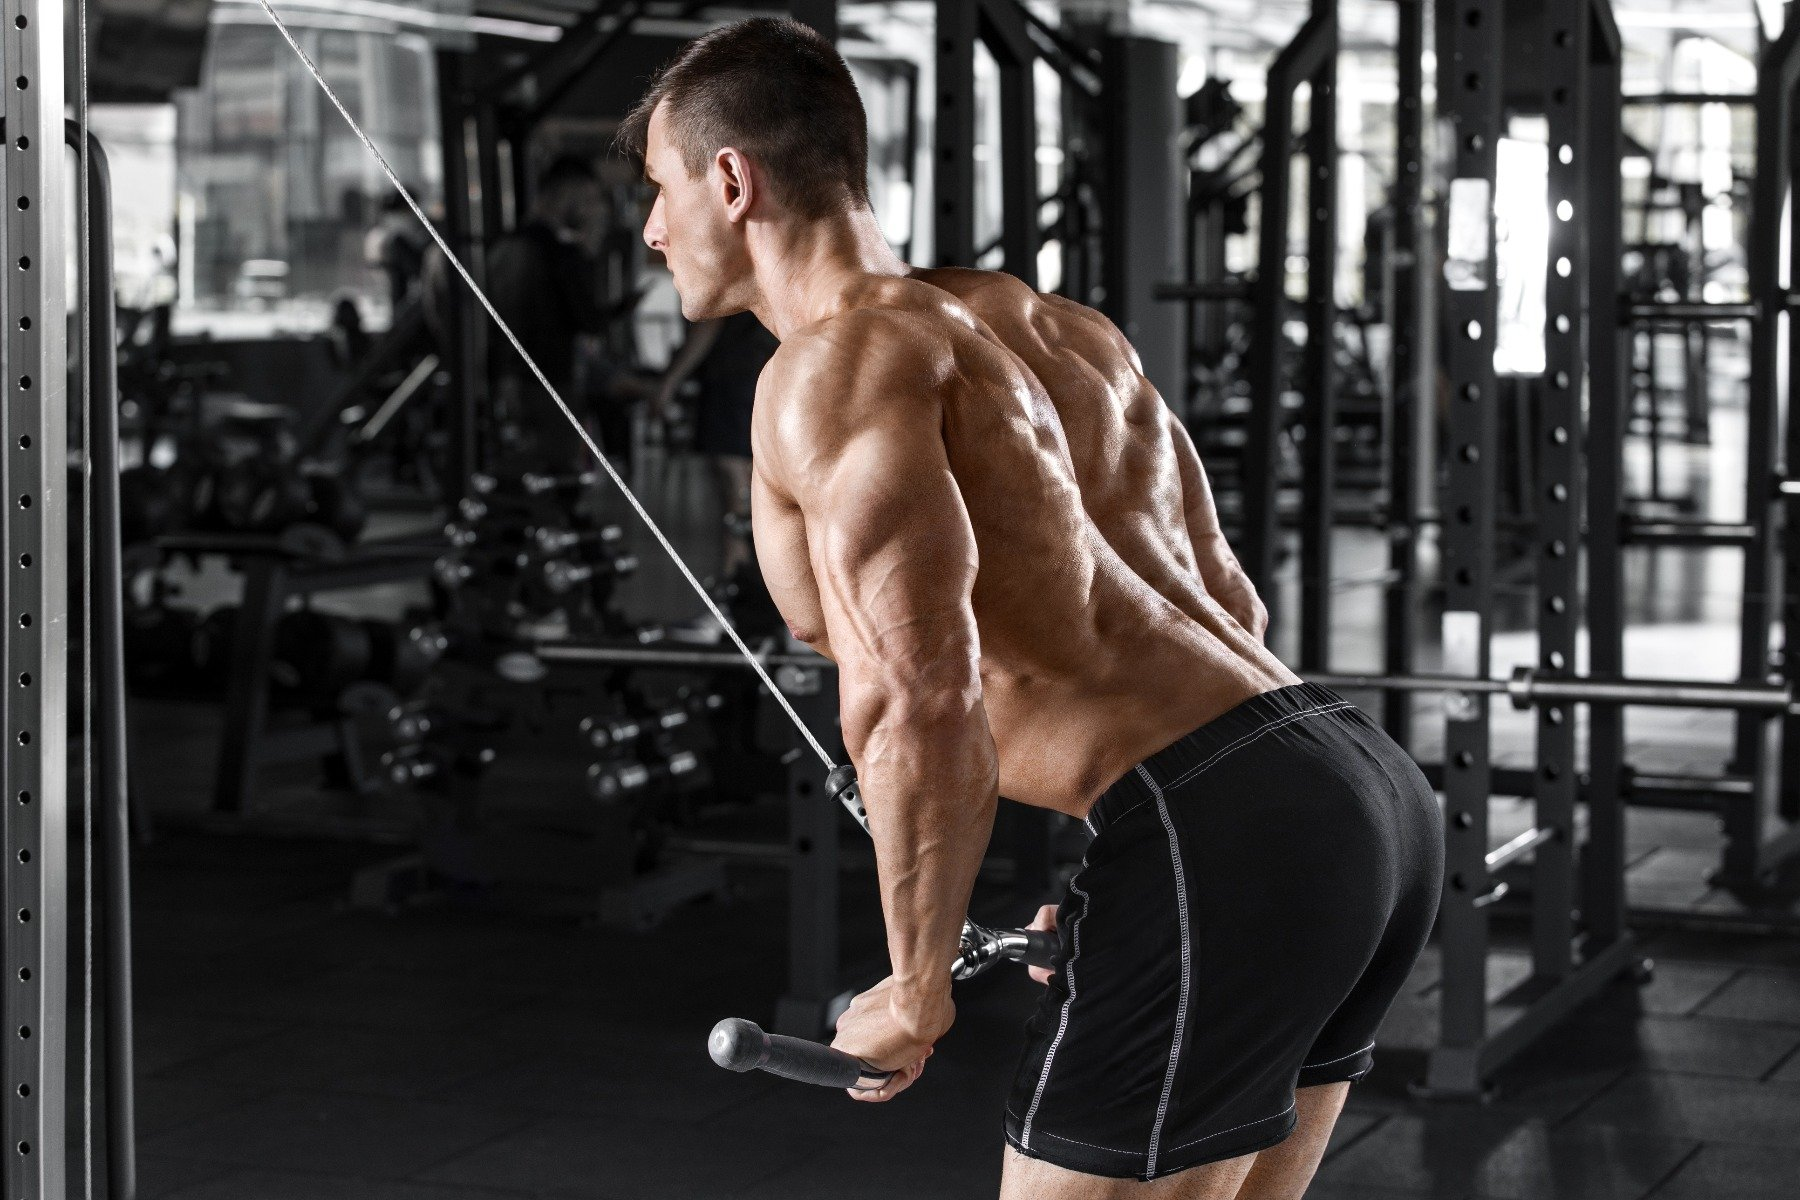 Betain - It affects muscle growth